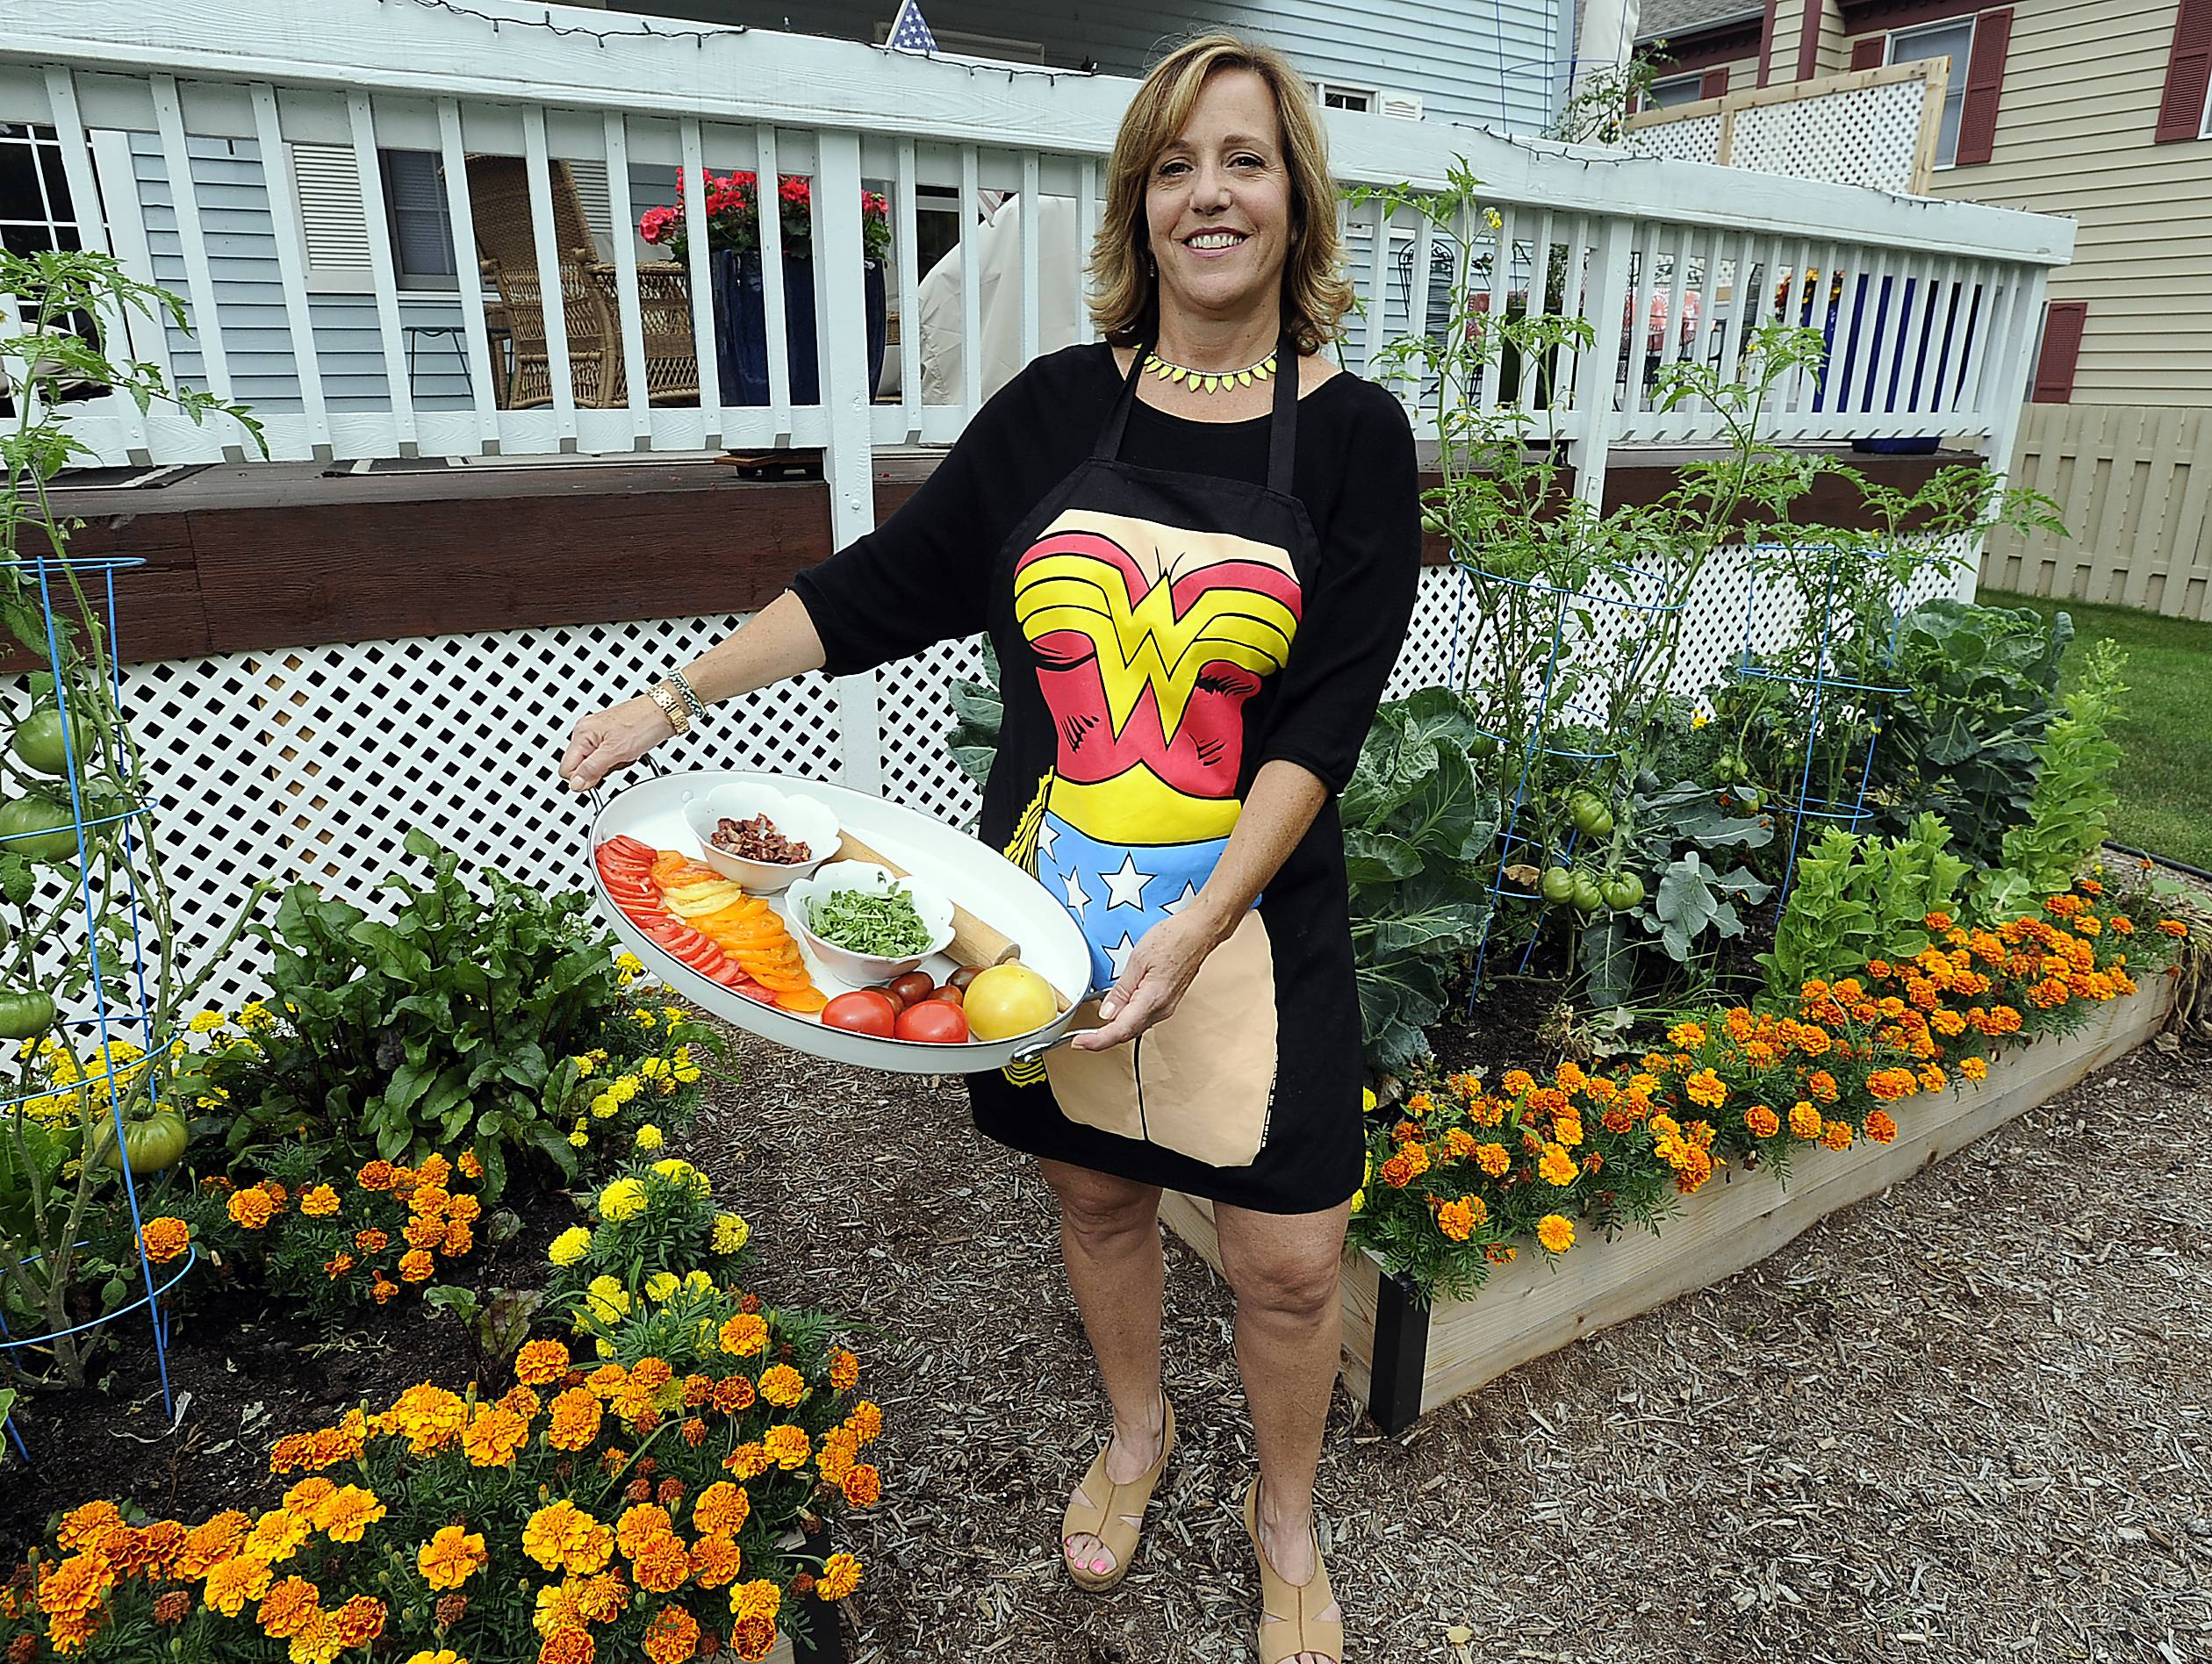 Tara Riley of Arlington Heights uses her powers to turn fresh garden ingredients into delicious meals for family and friends.